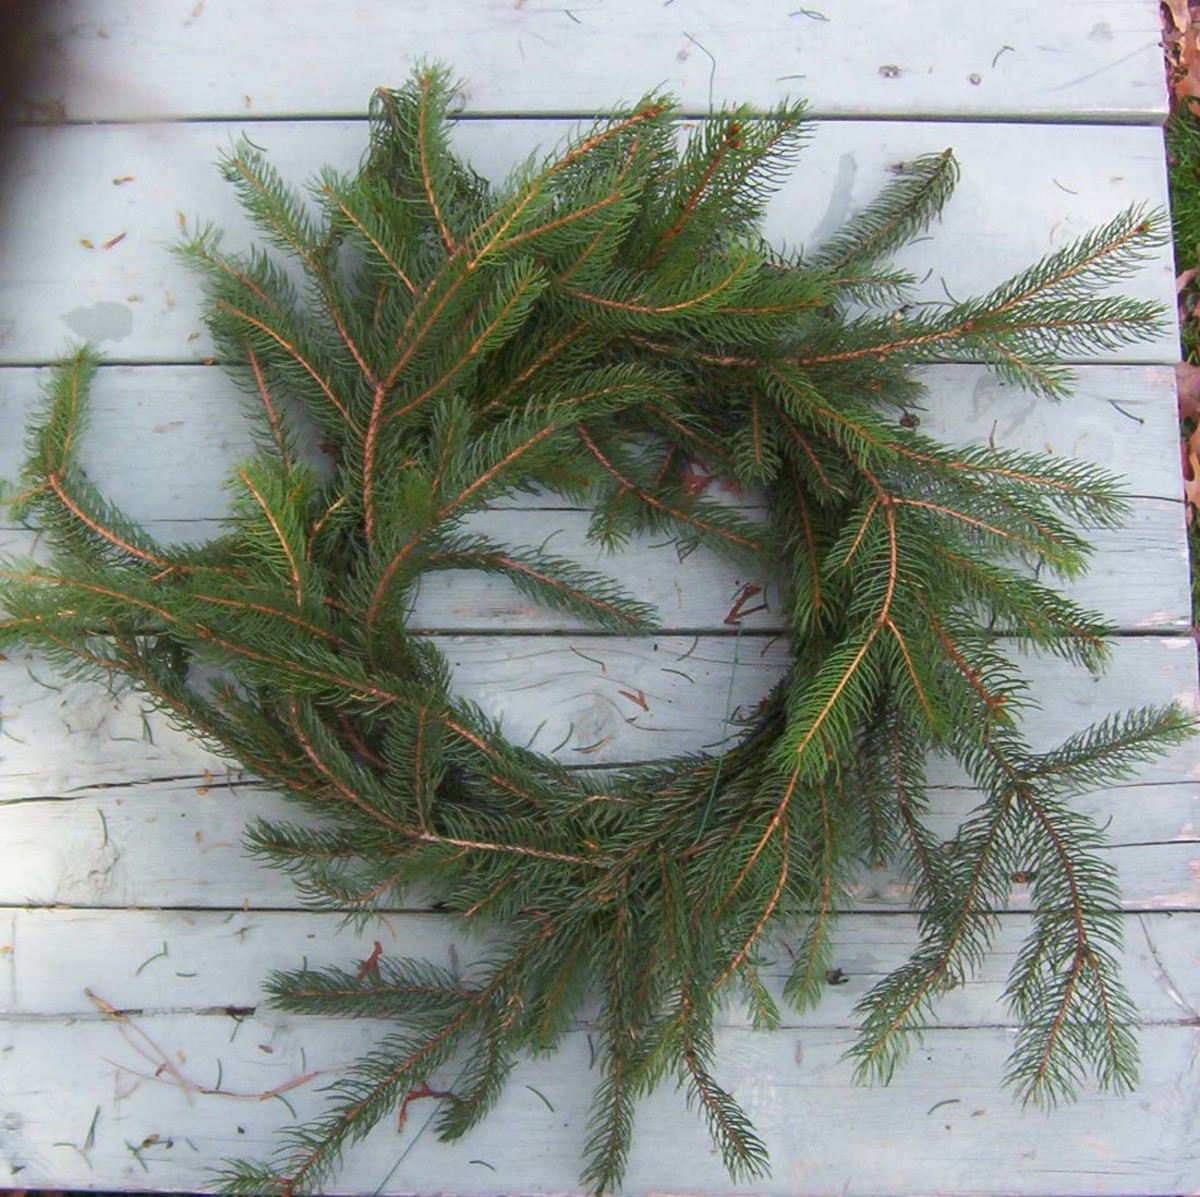 Loose evergreen pieces can be secured with wire.